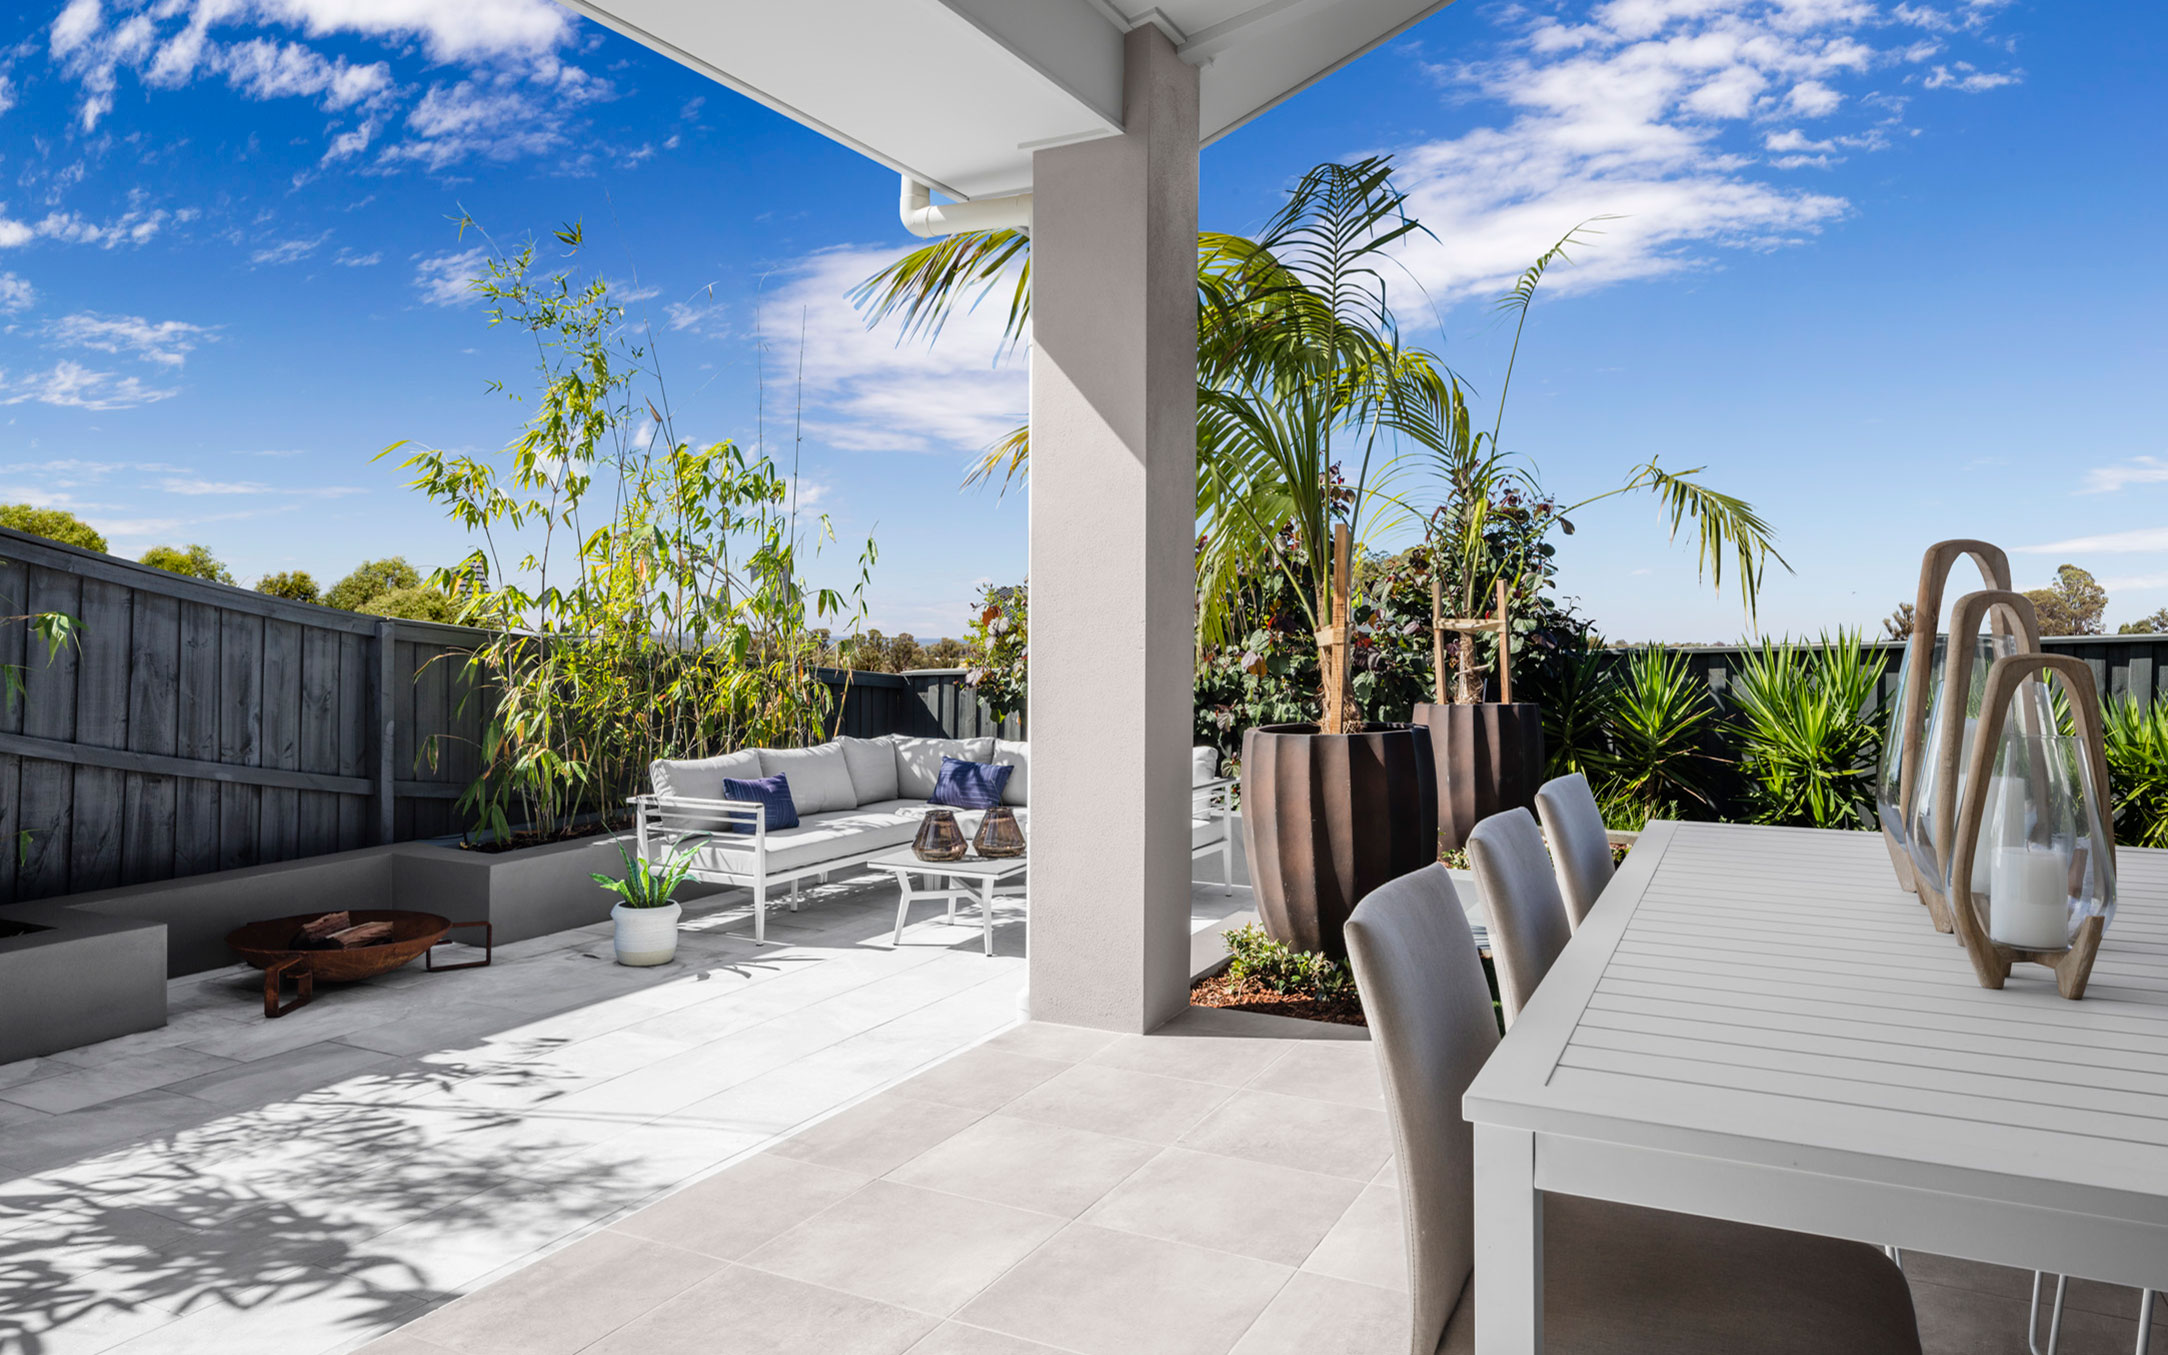 Sienna Display Home Patio Dining at HomeWorld Warnervale